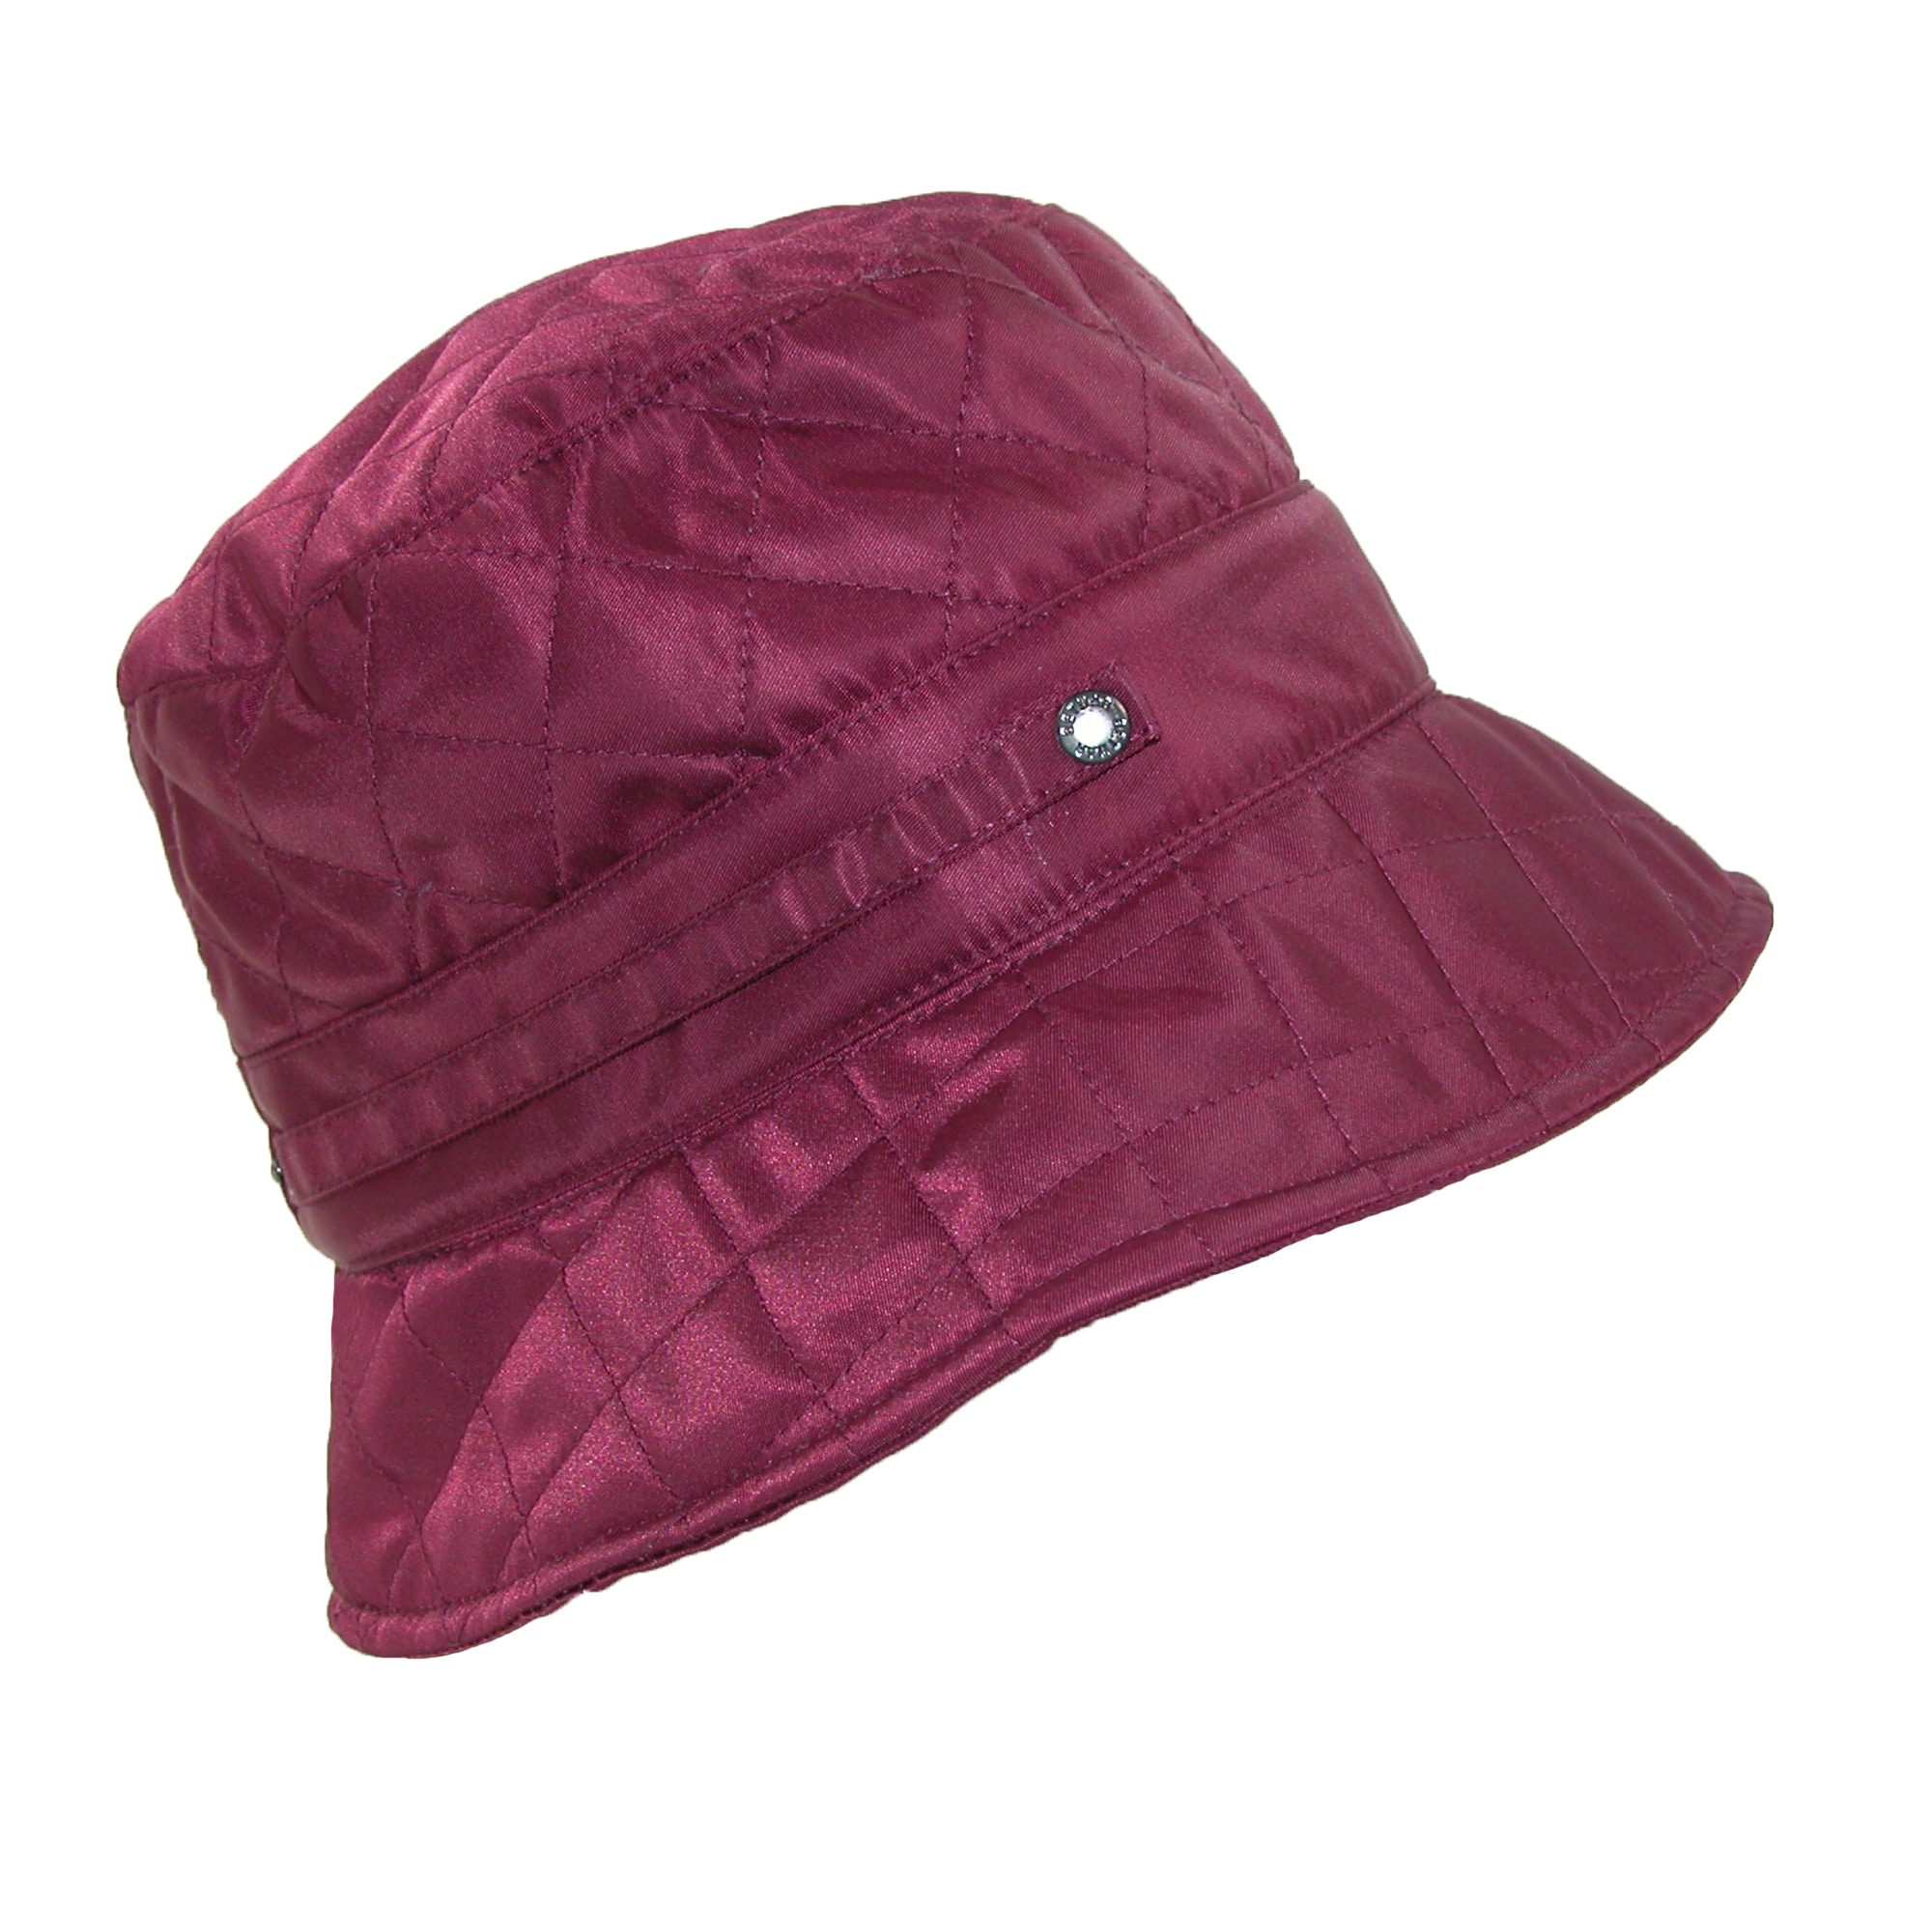 e621b79c0d973 Shop Betmar Women s Nylon Quilted Waterproof Bucket Rain Hat - Free  Shipping On Orders Over  45 - Overstock - 14294919